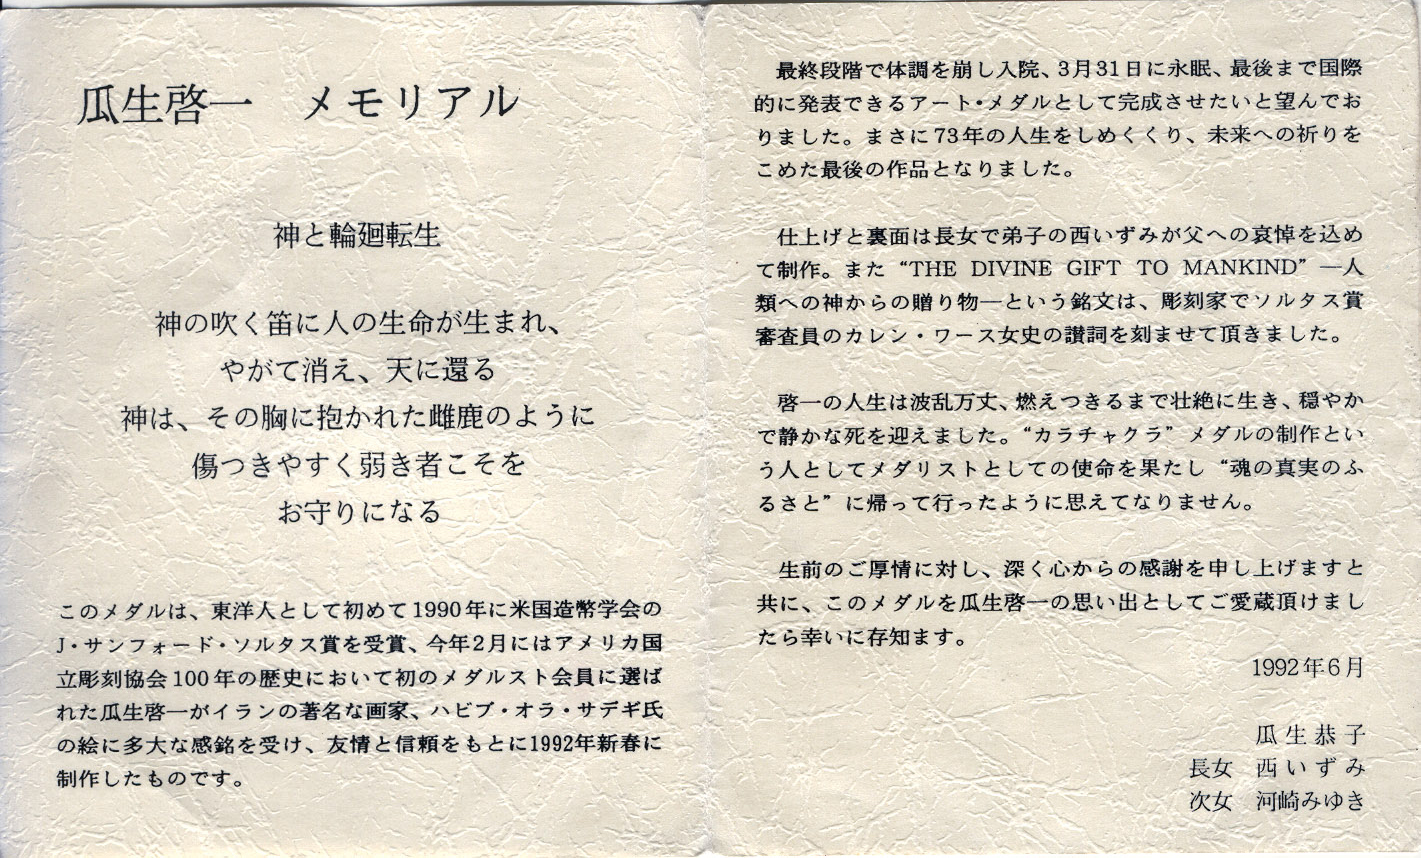 medal-description-jp